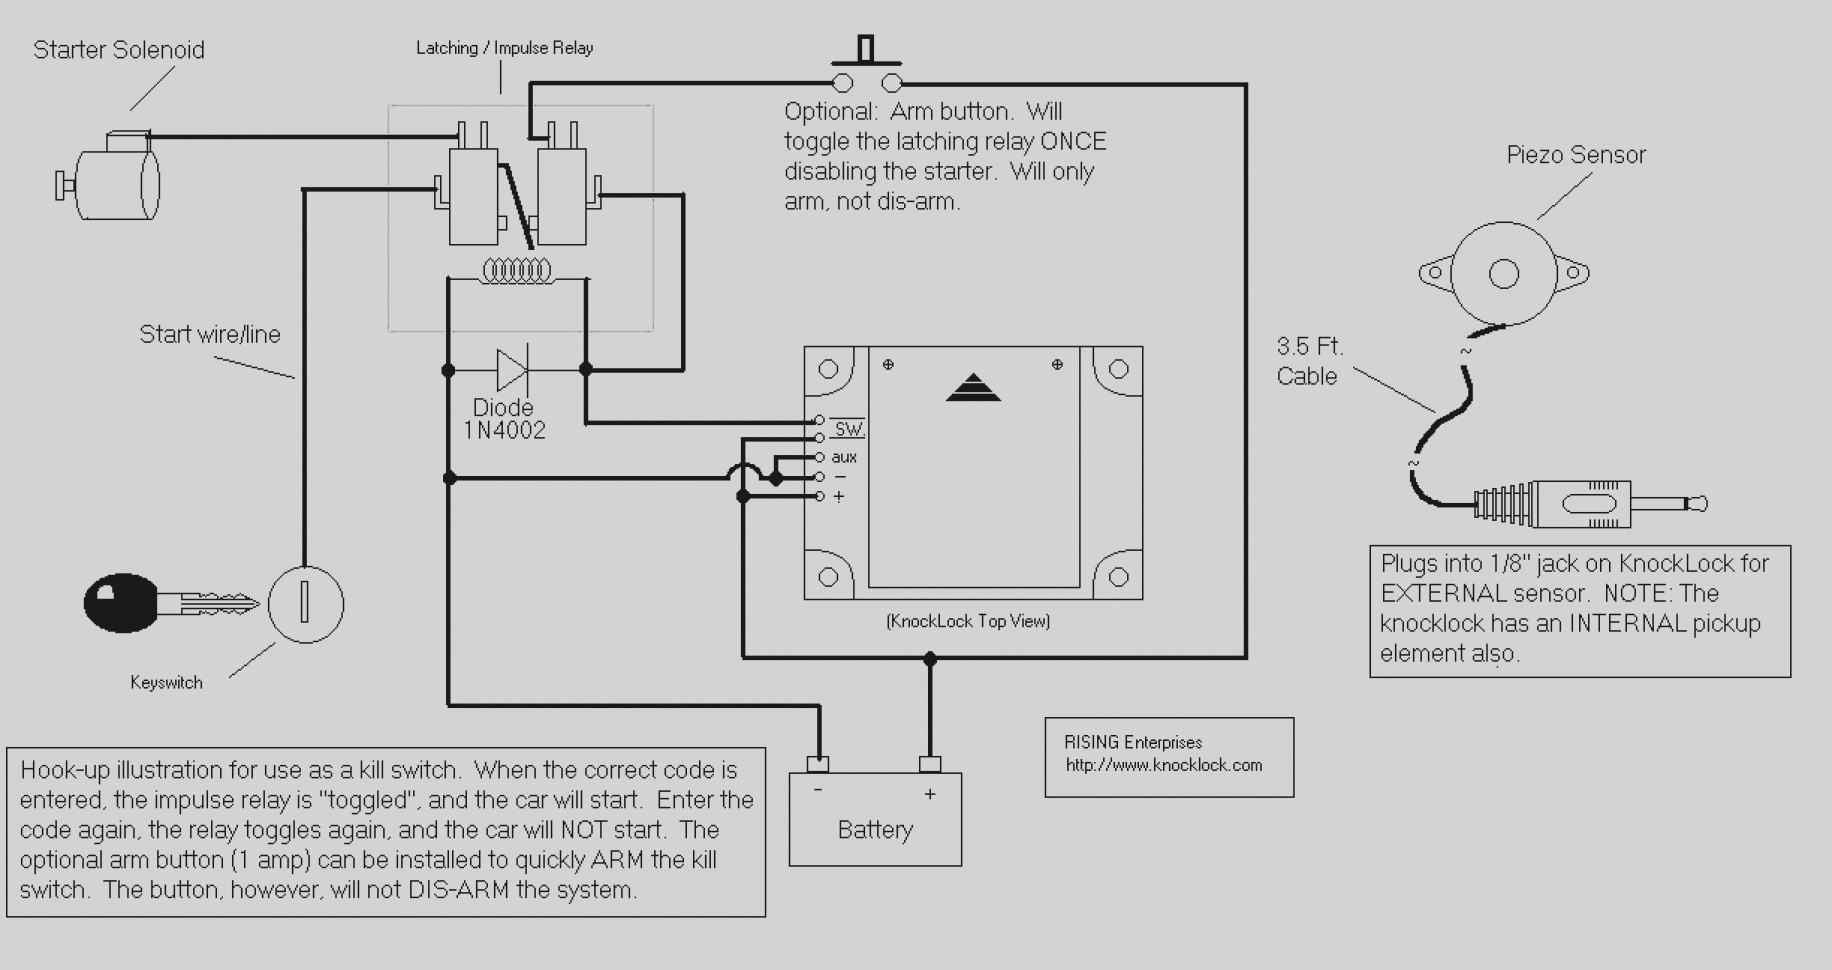 Rbi Dominator Boiler Wiring Diagram Download